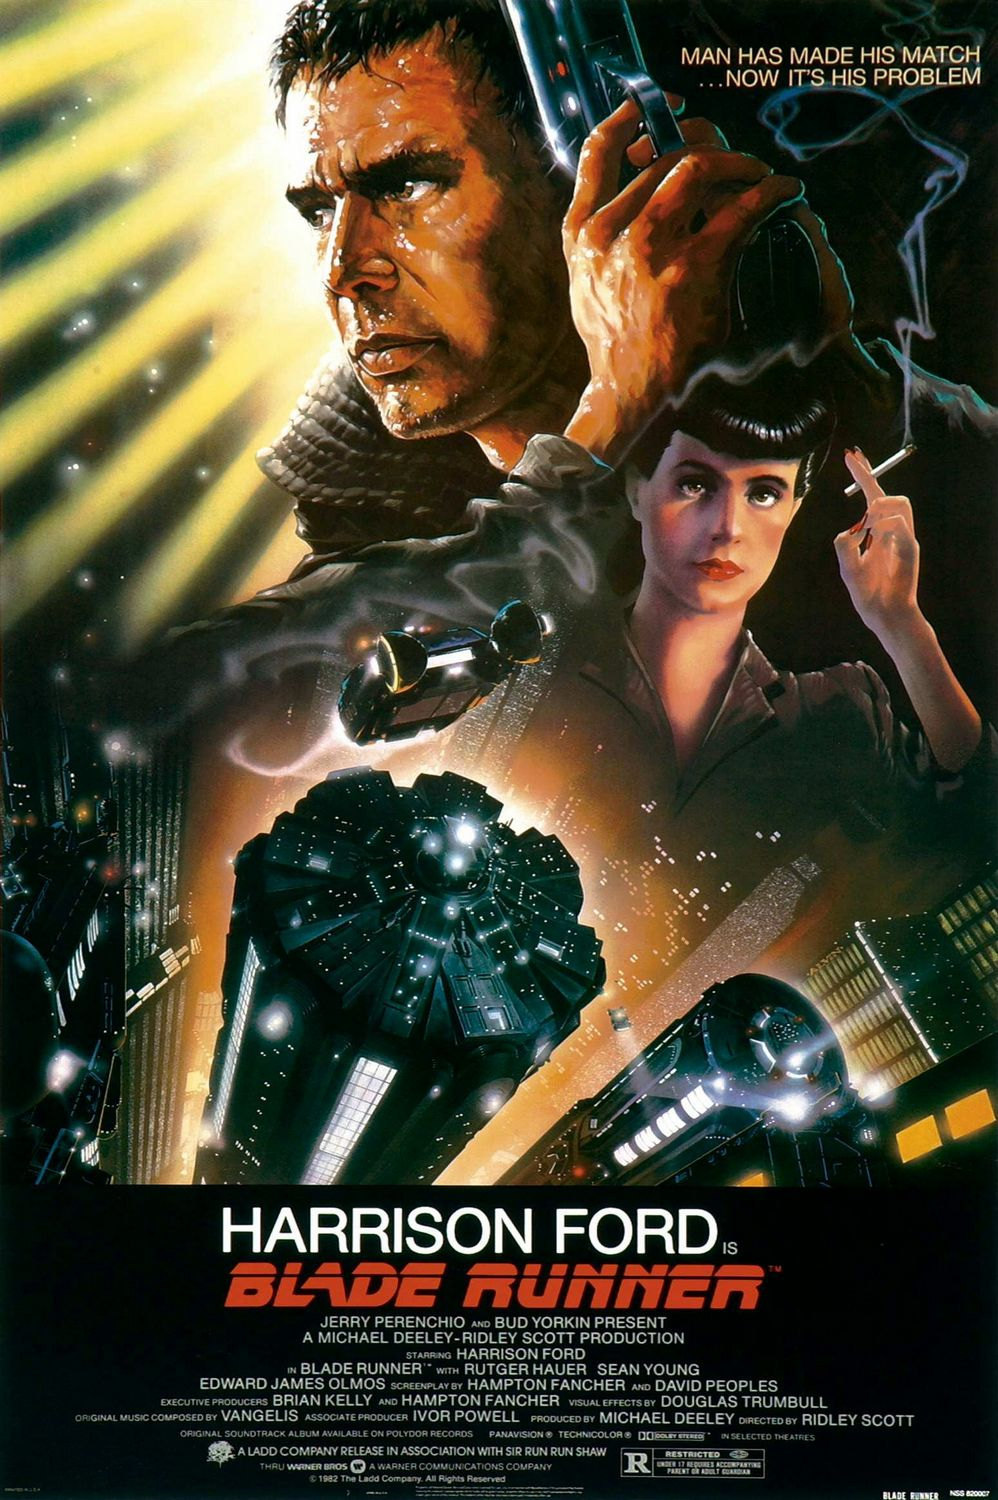 BLADE RUNNER MOVIE POSTER 27X40 HARRISON FORD SEAN YOUNG PHILIP K. DICK